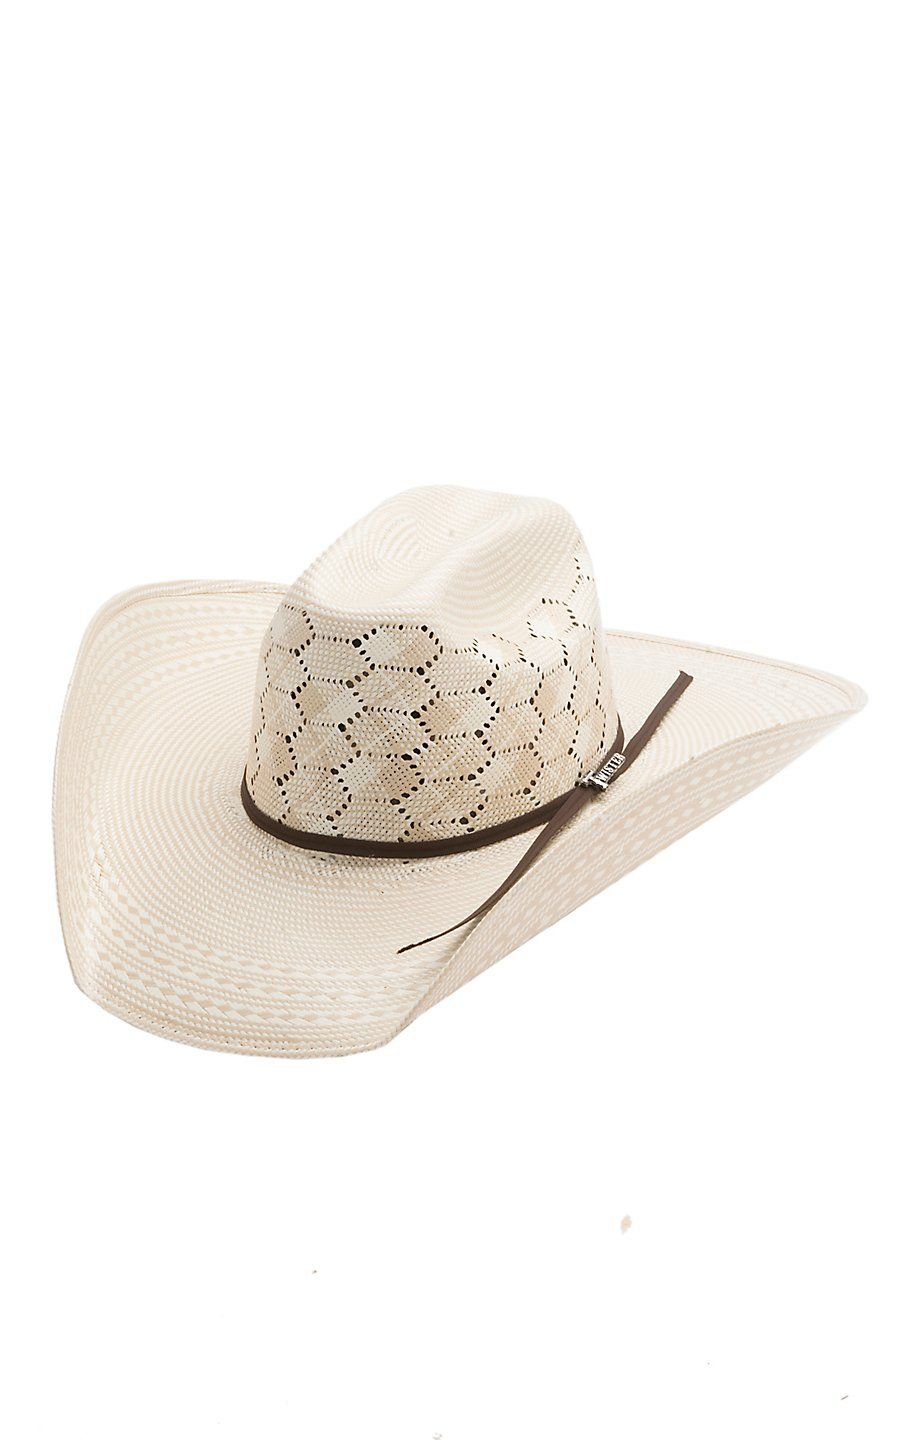 6c3465d3520 Twister 10X Two Tone Hex Vent Straw Cowboy Hat